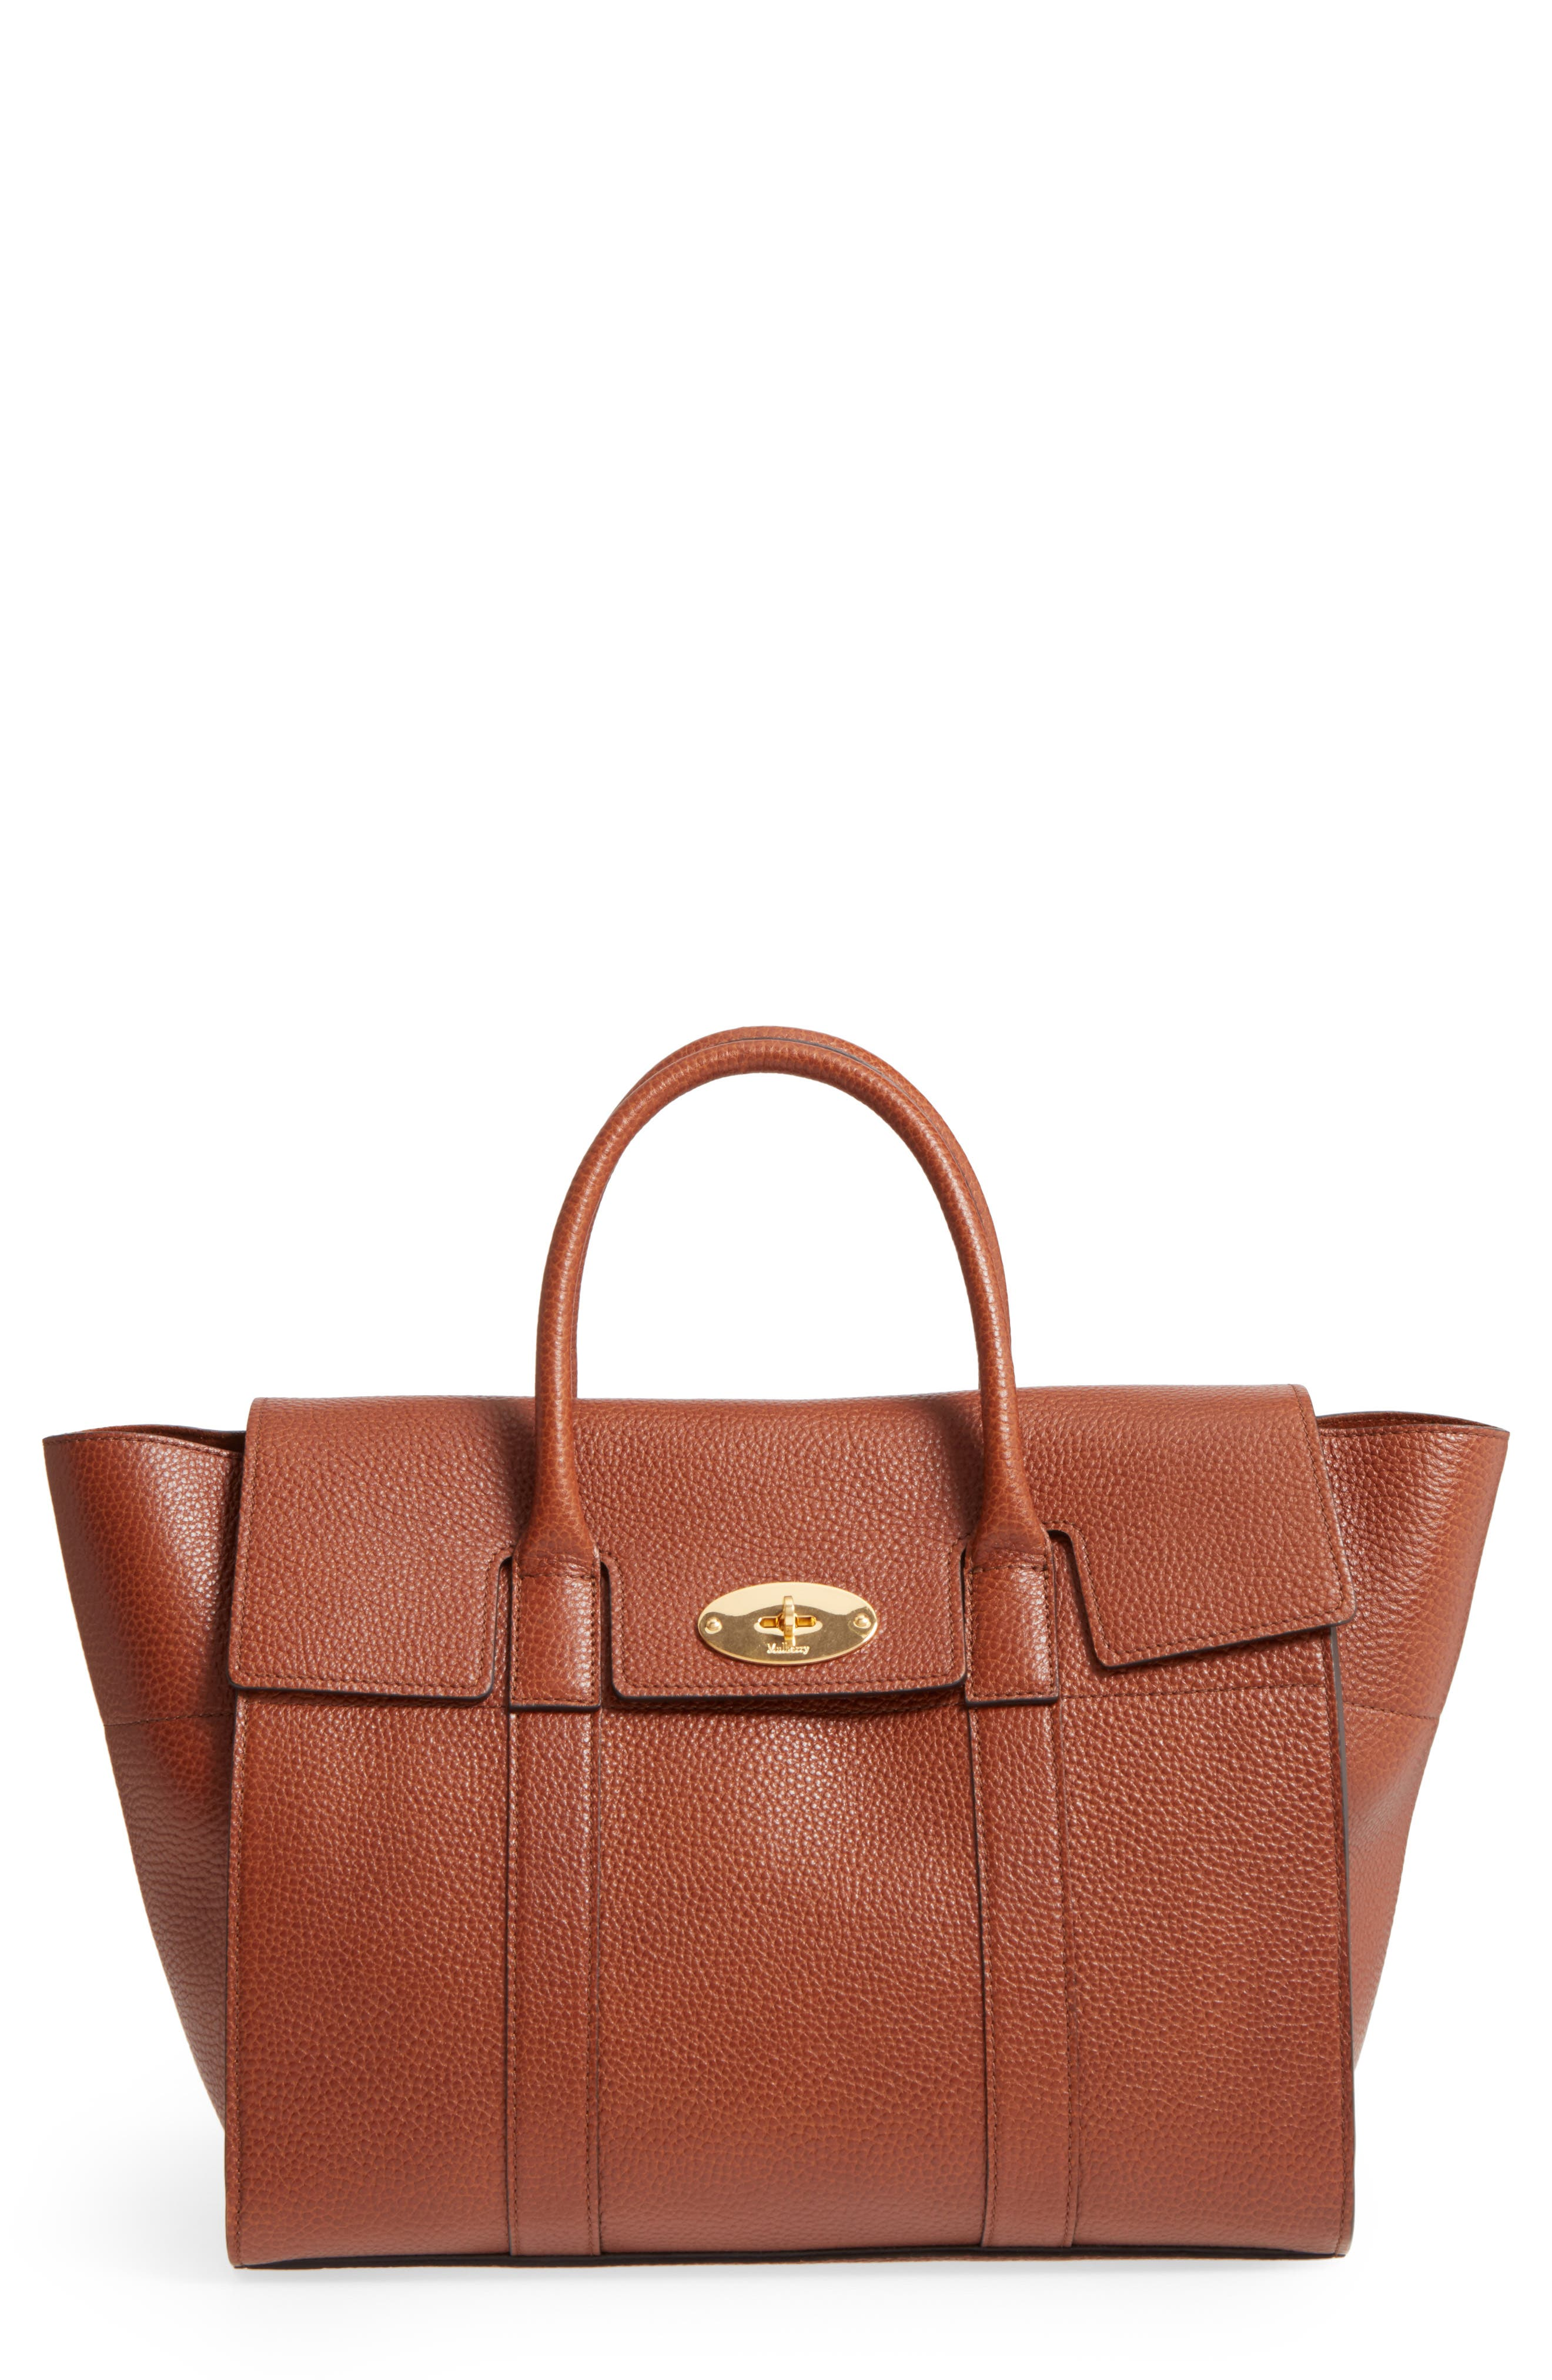 Bayswater Calfskin Leather Satchel,                         Main,                         color, 201